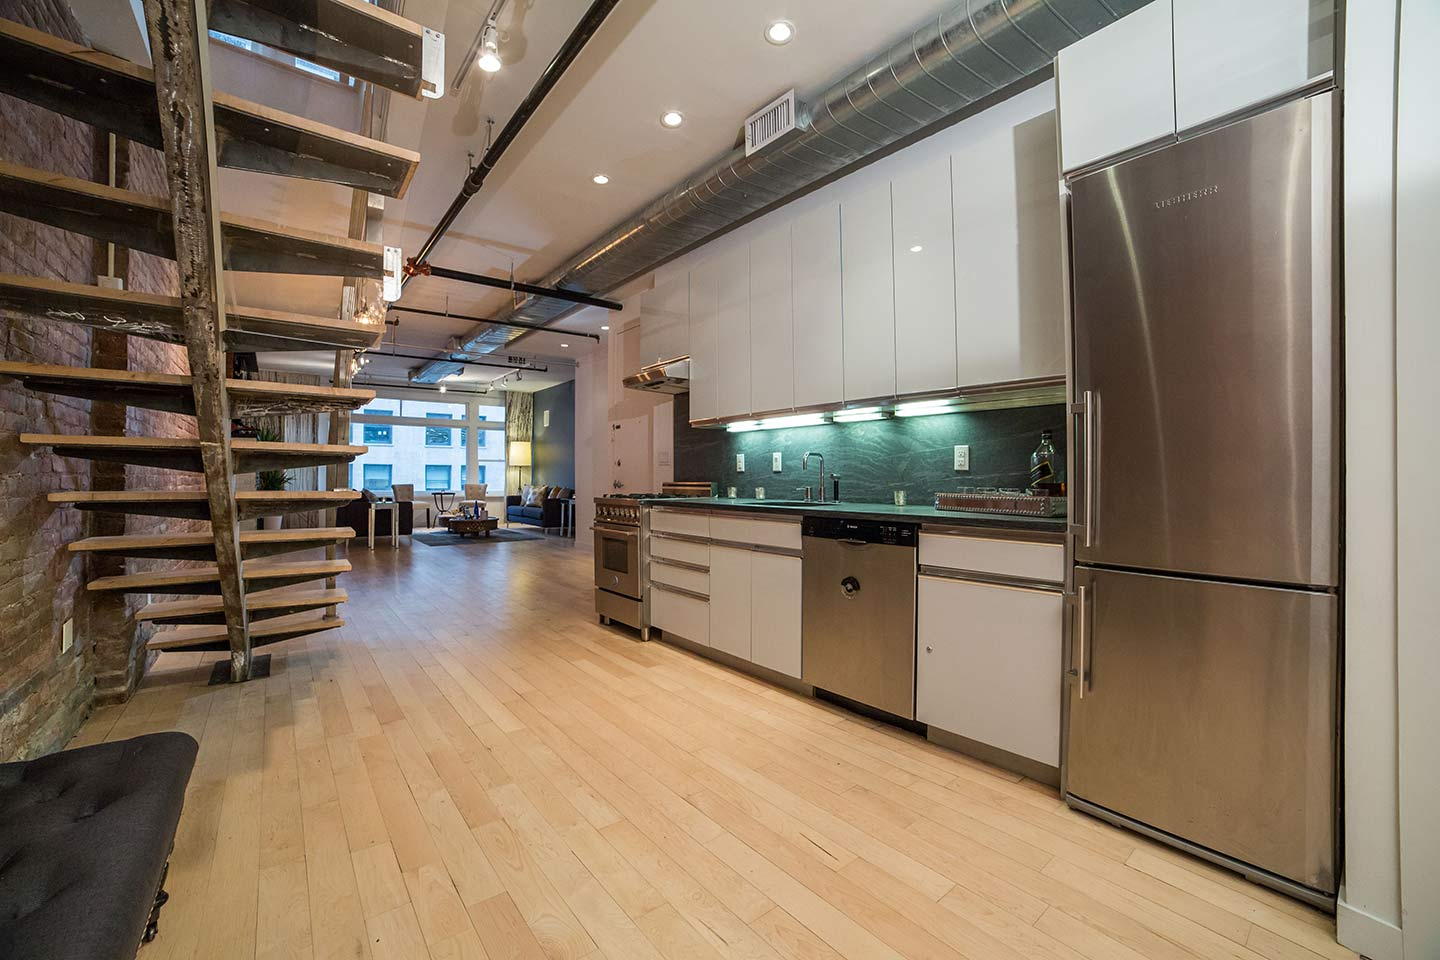 Nyc Penthouses For Parties Flatiron District Penthouse Loft Event Space For Meetings And